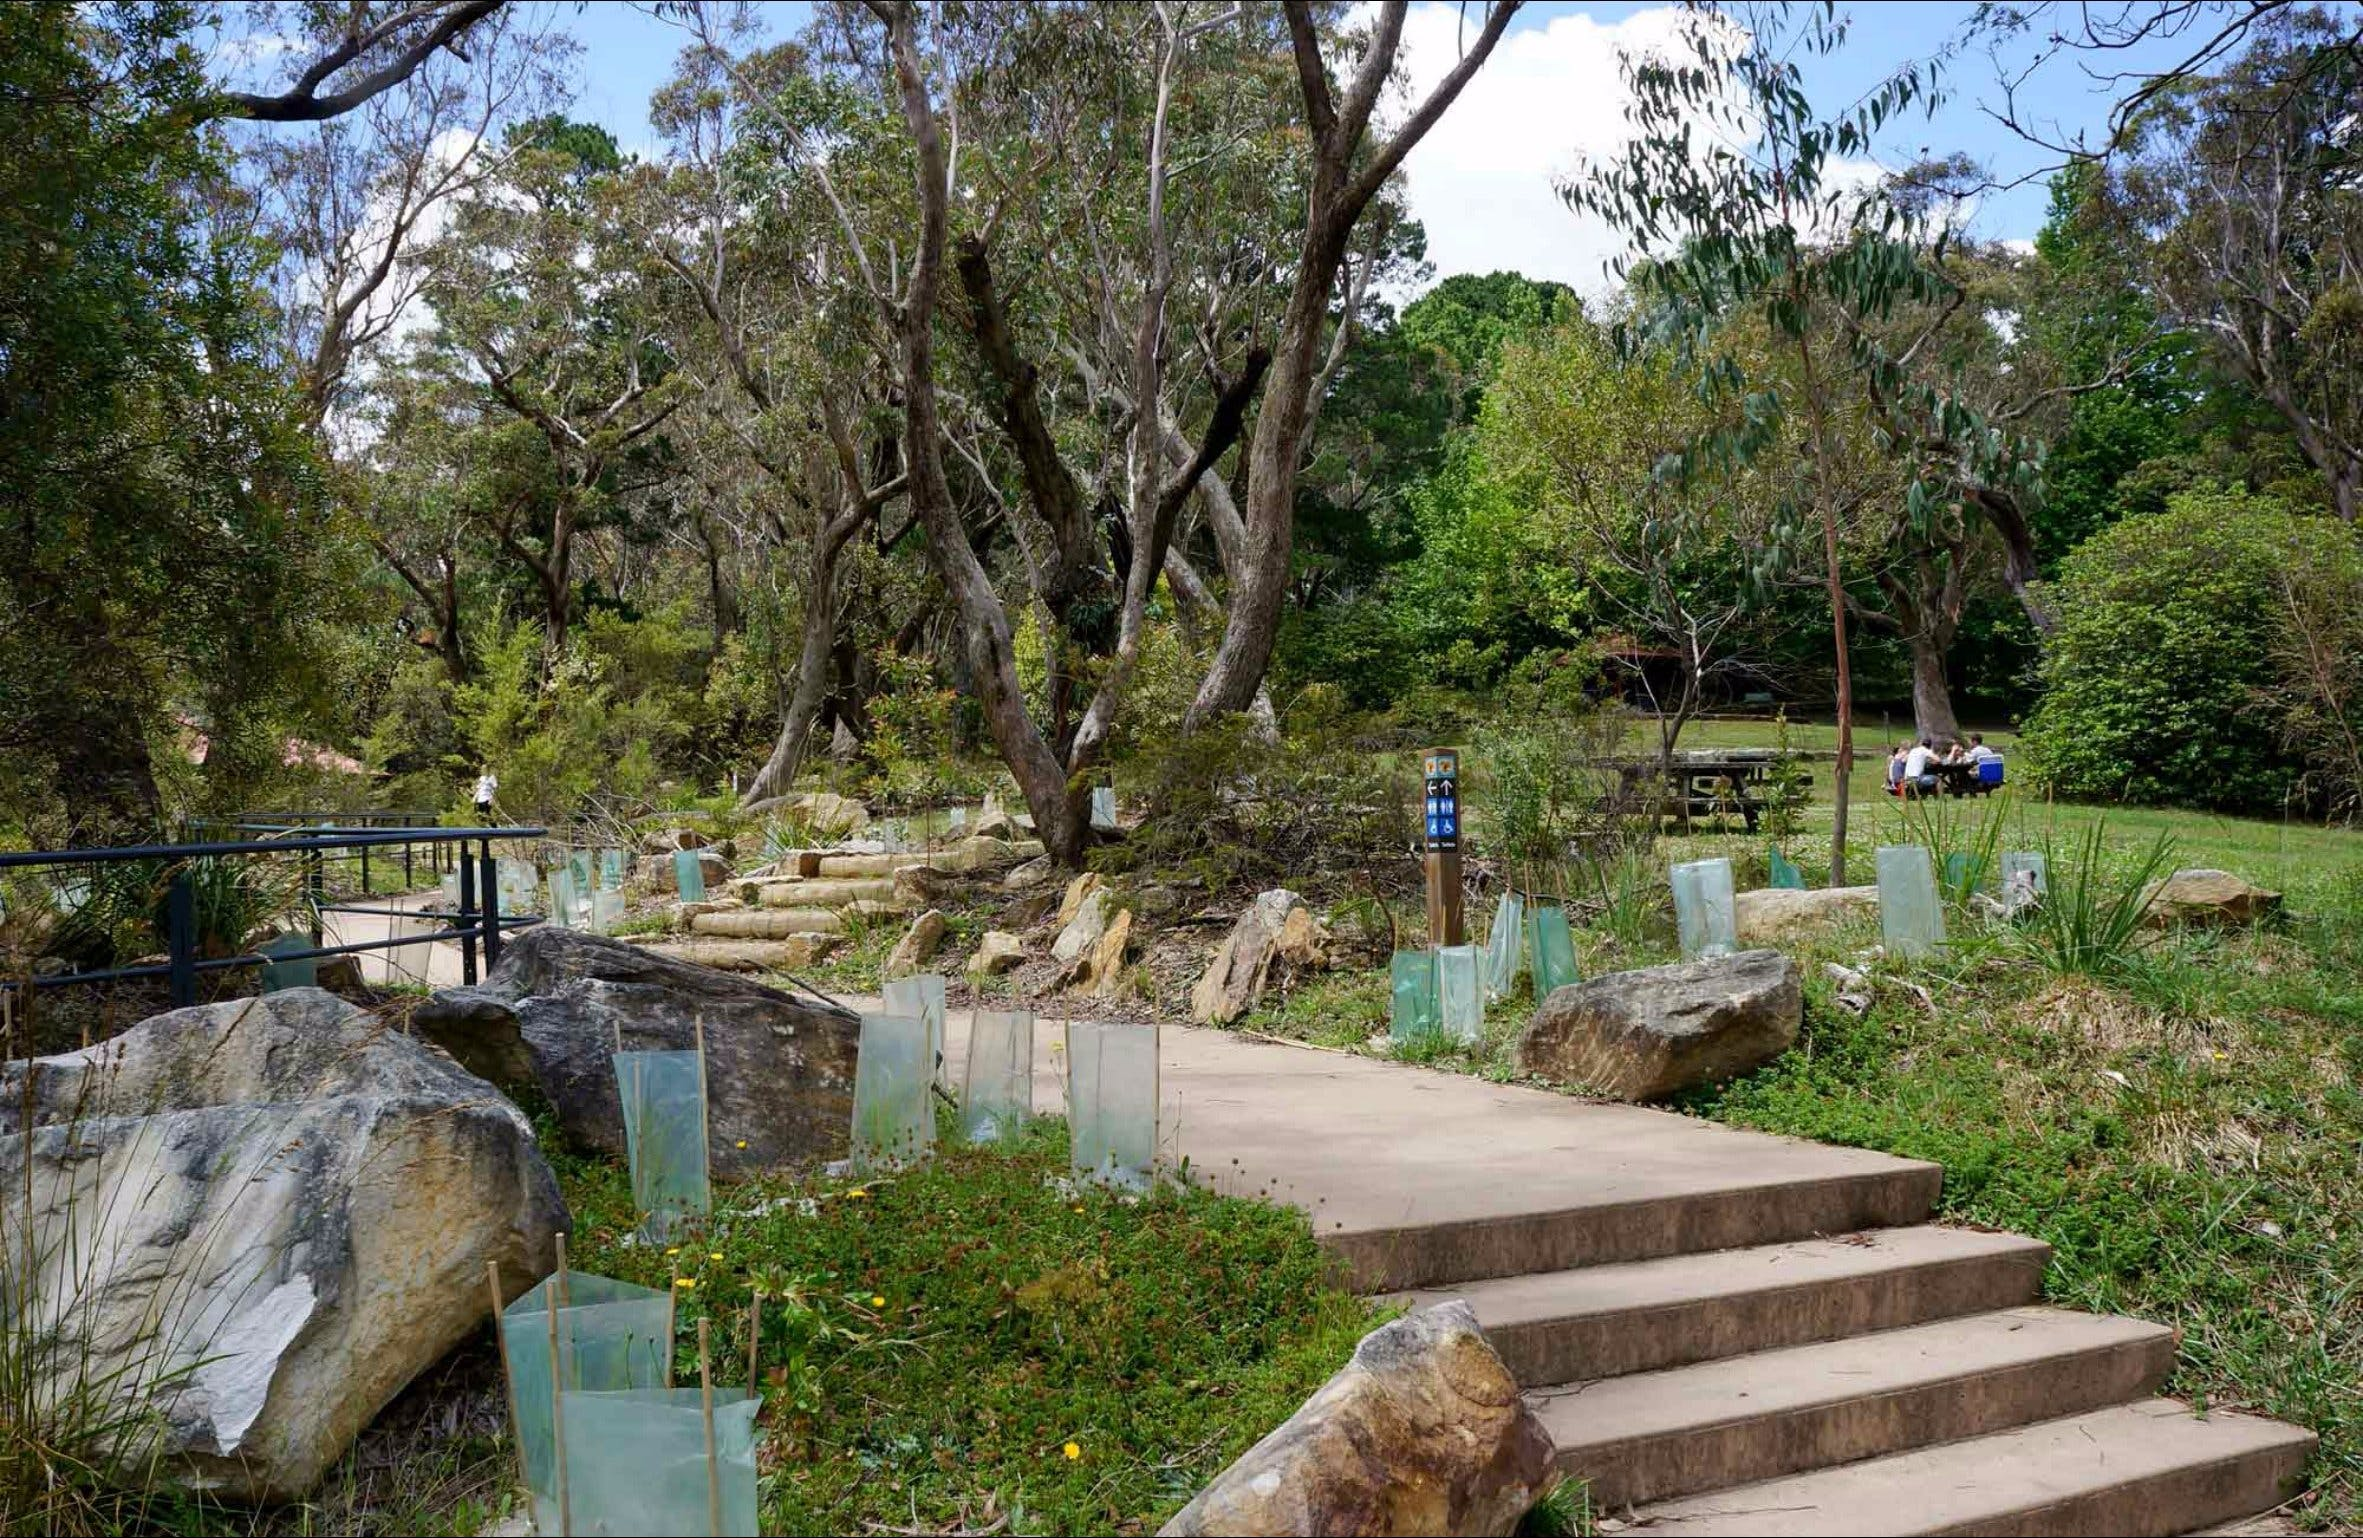 Wentworth Falls picnic area - Tourism TAS